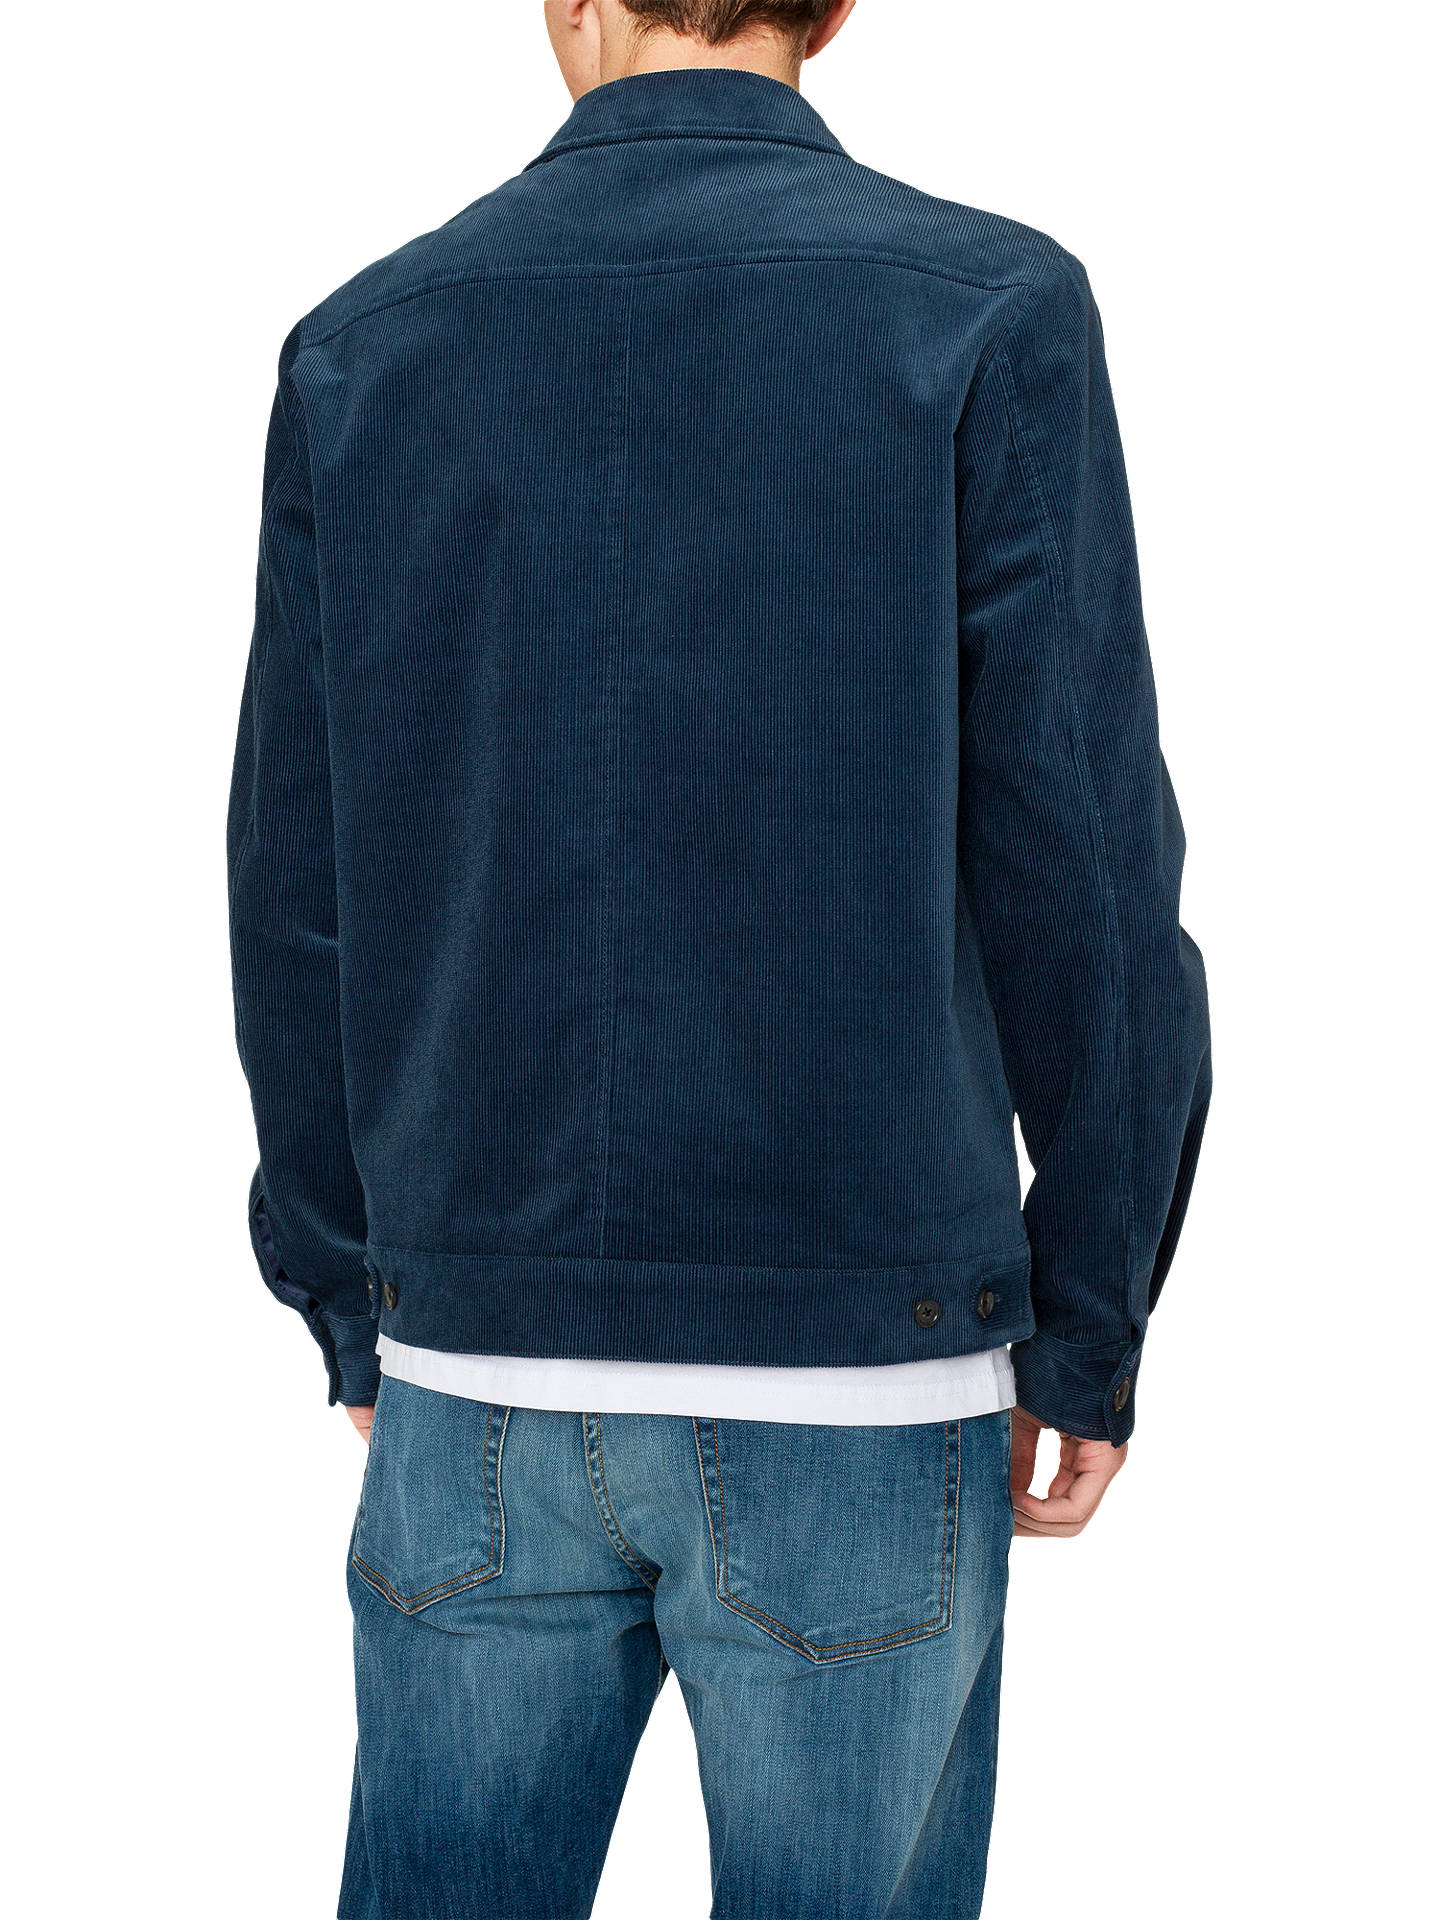 Buy PS Paul Smith Corduroy Harrington Jacket, Blue, S Online at johnlewis.com